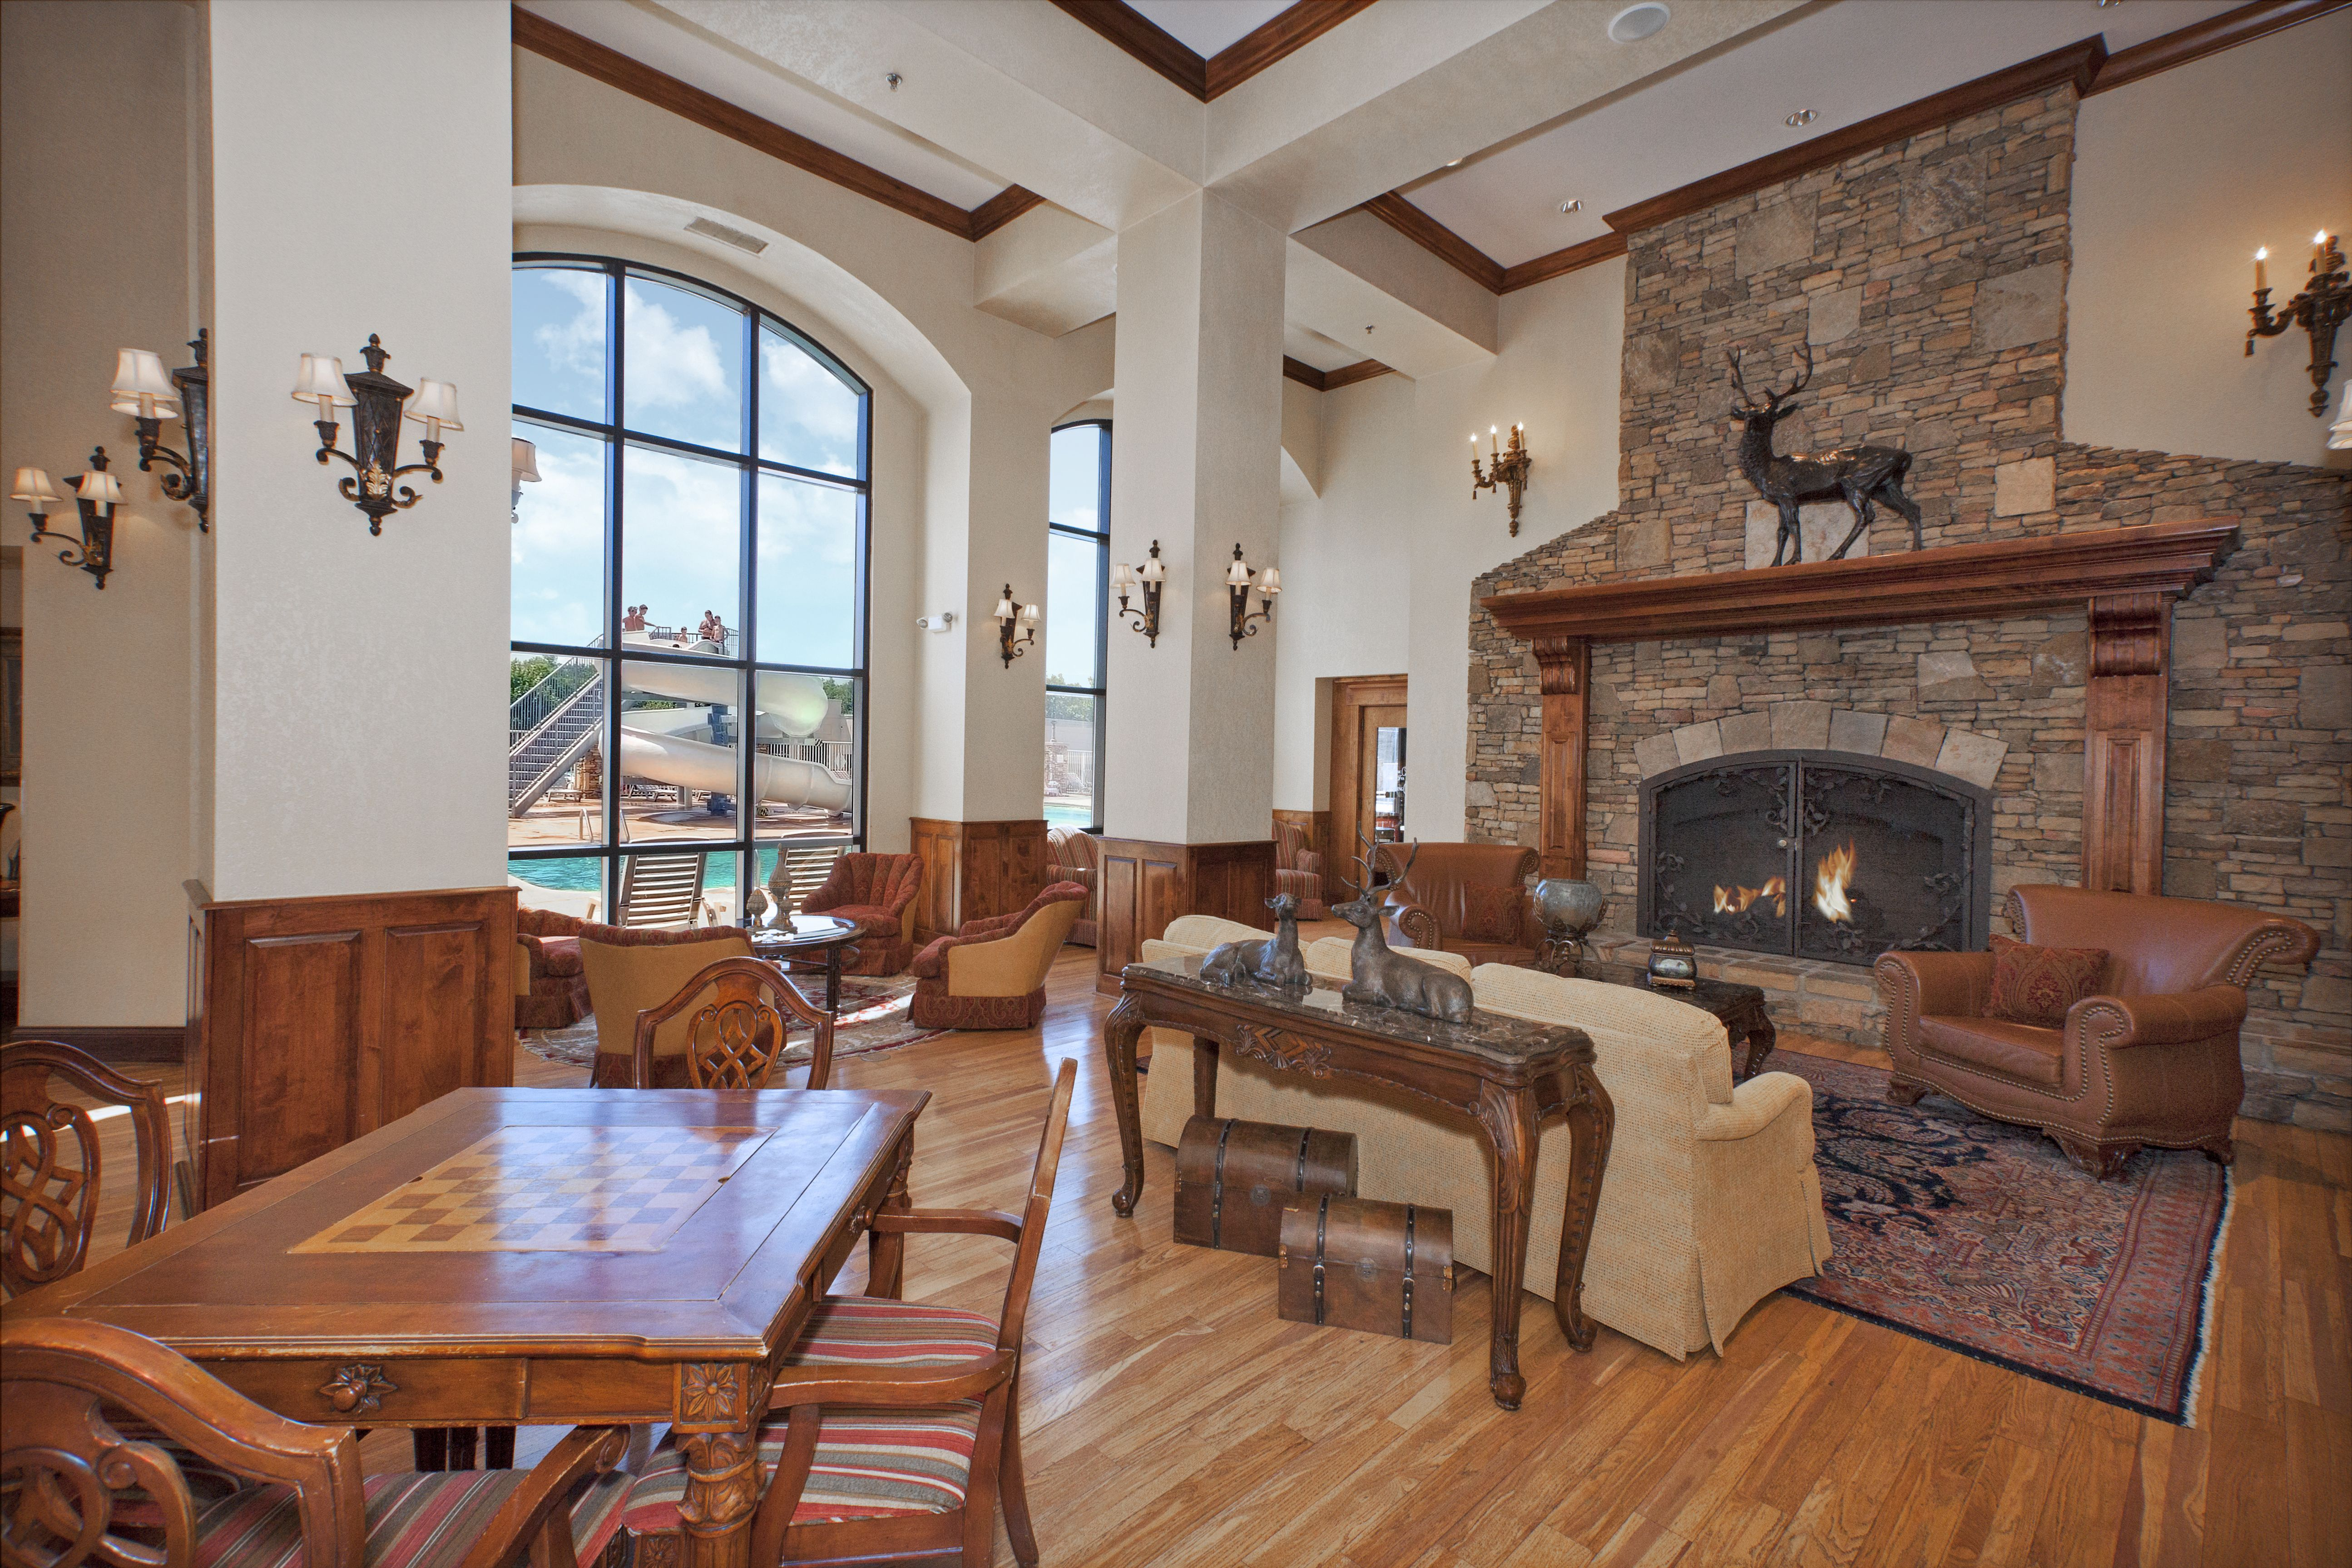 Walk Into This Charming Inn Lobby With Fireplace And Views Of The